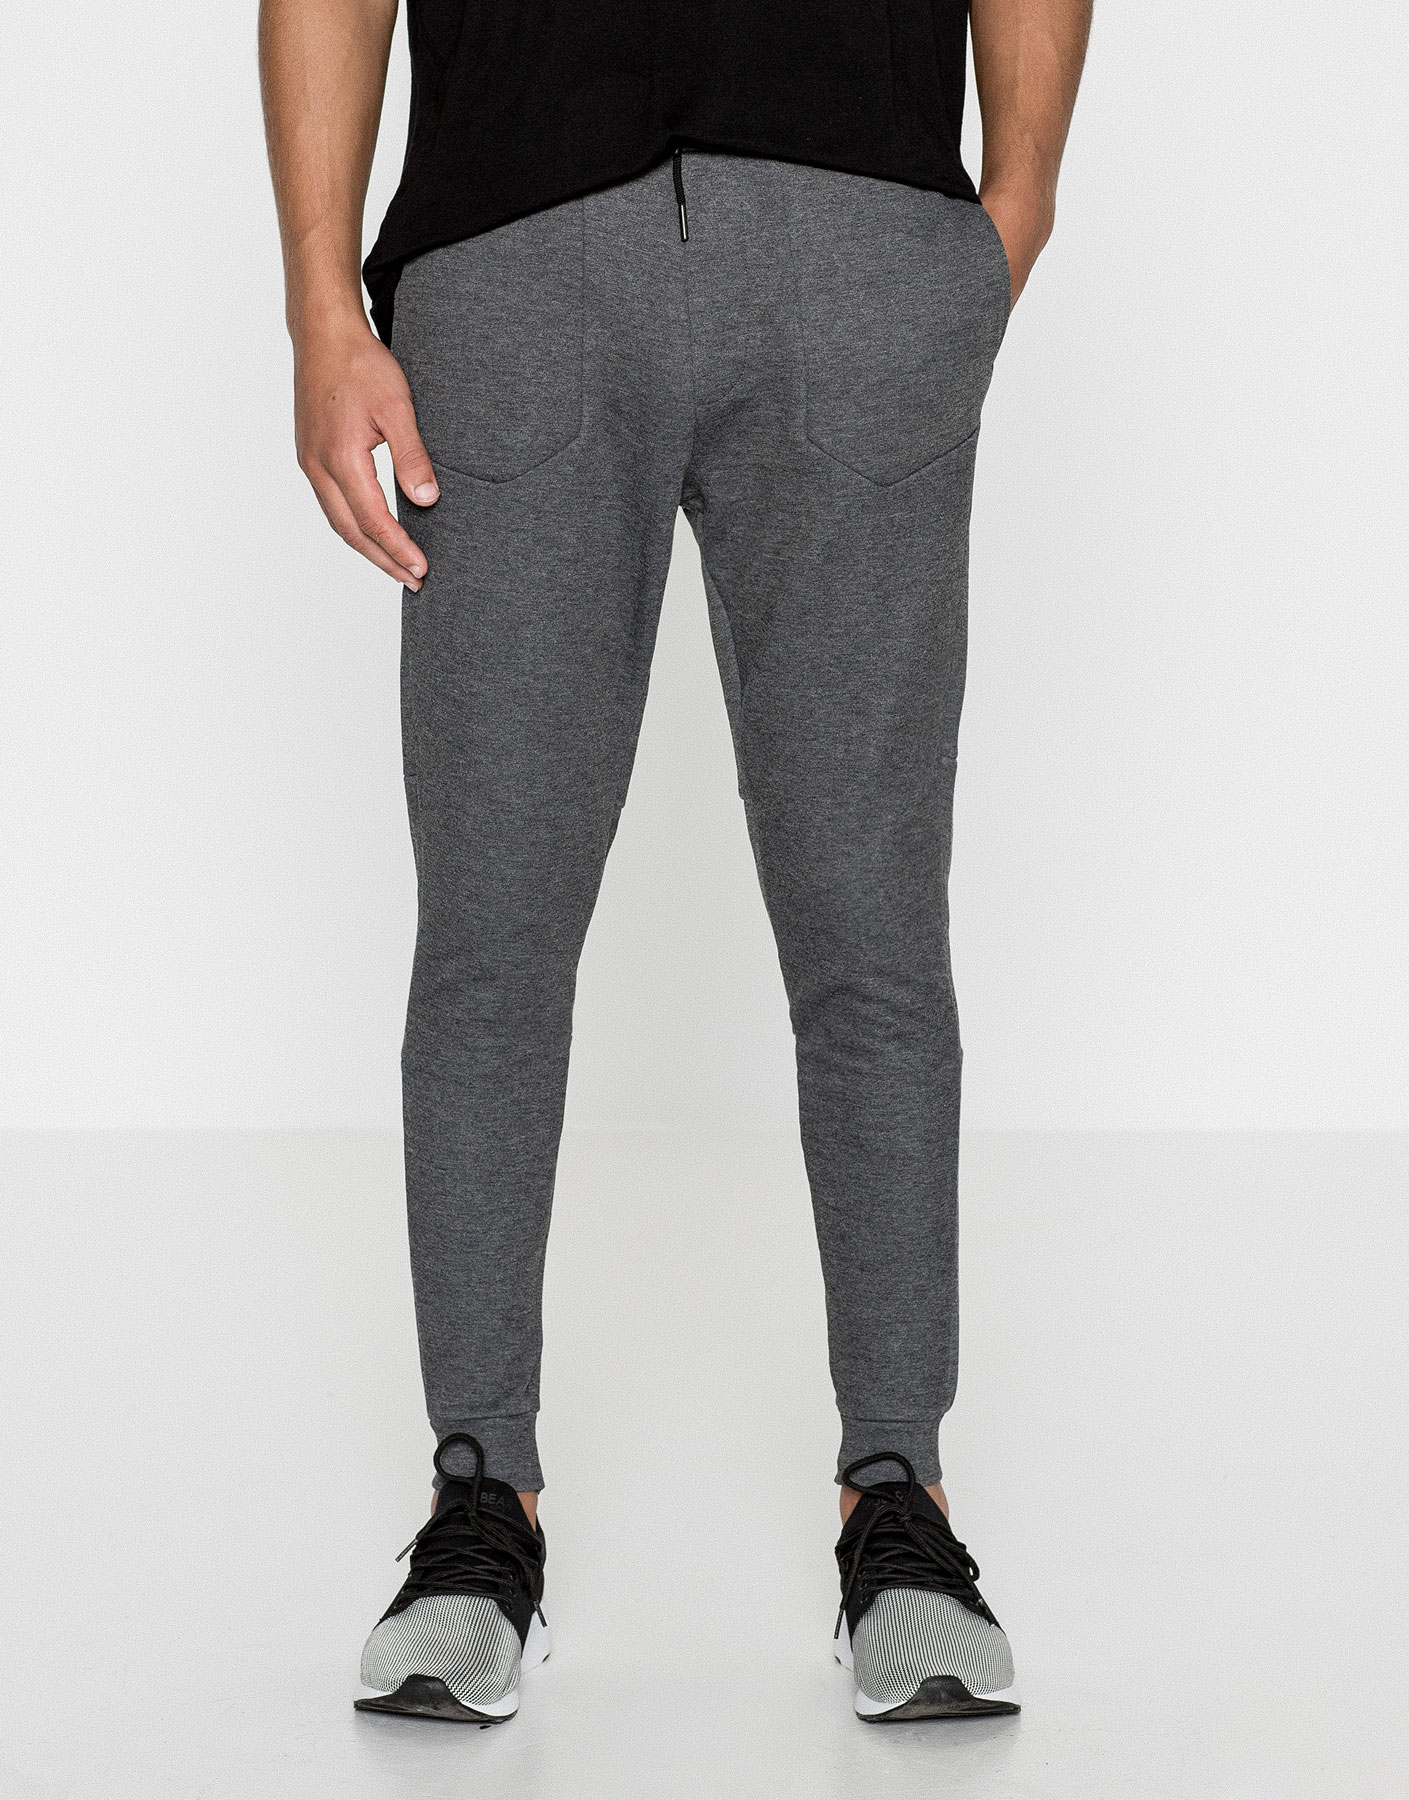 Gym joggingbroek